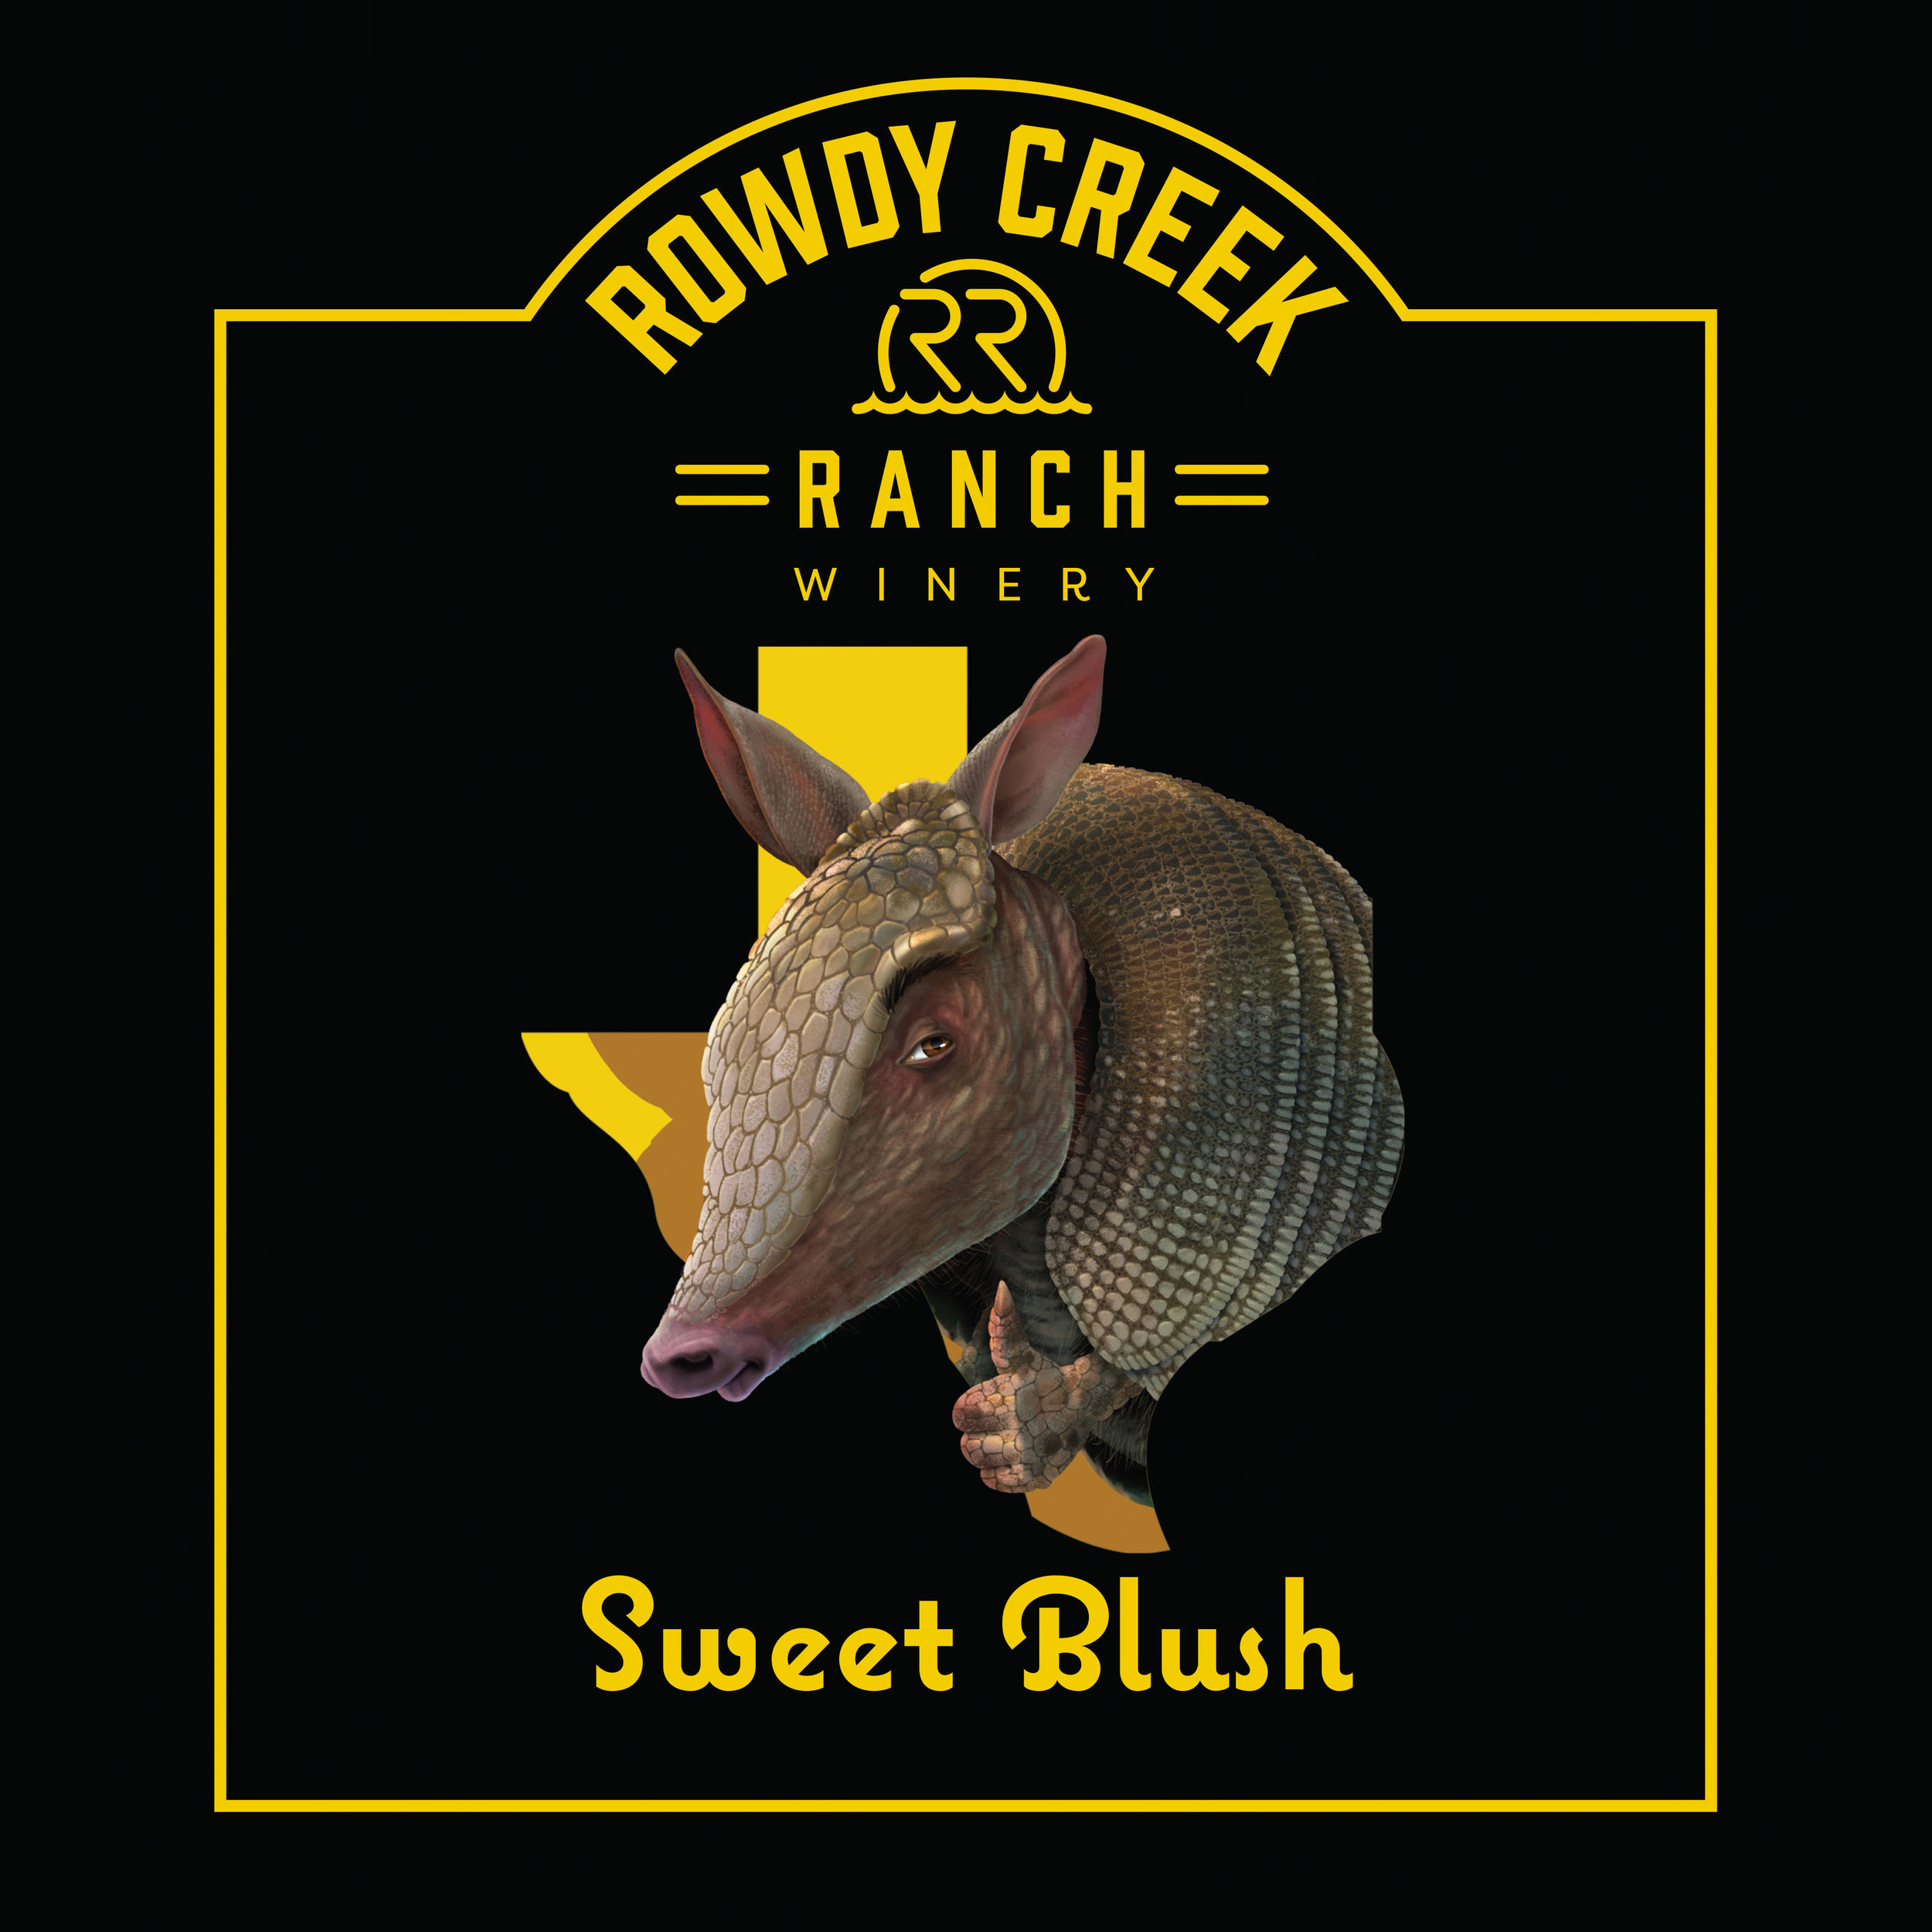 Rowdy Creek Ranch Sweet Blush Wine Label